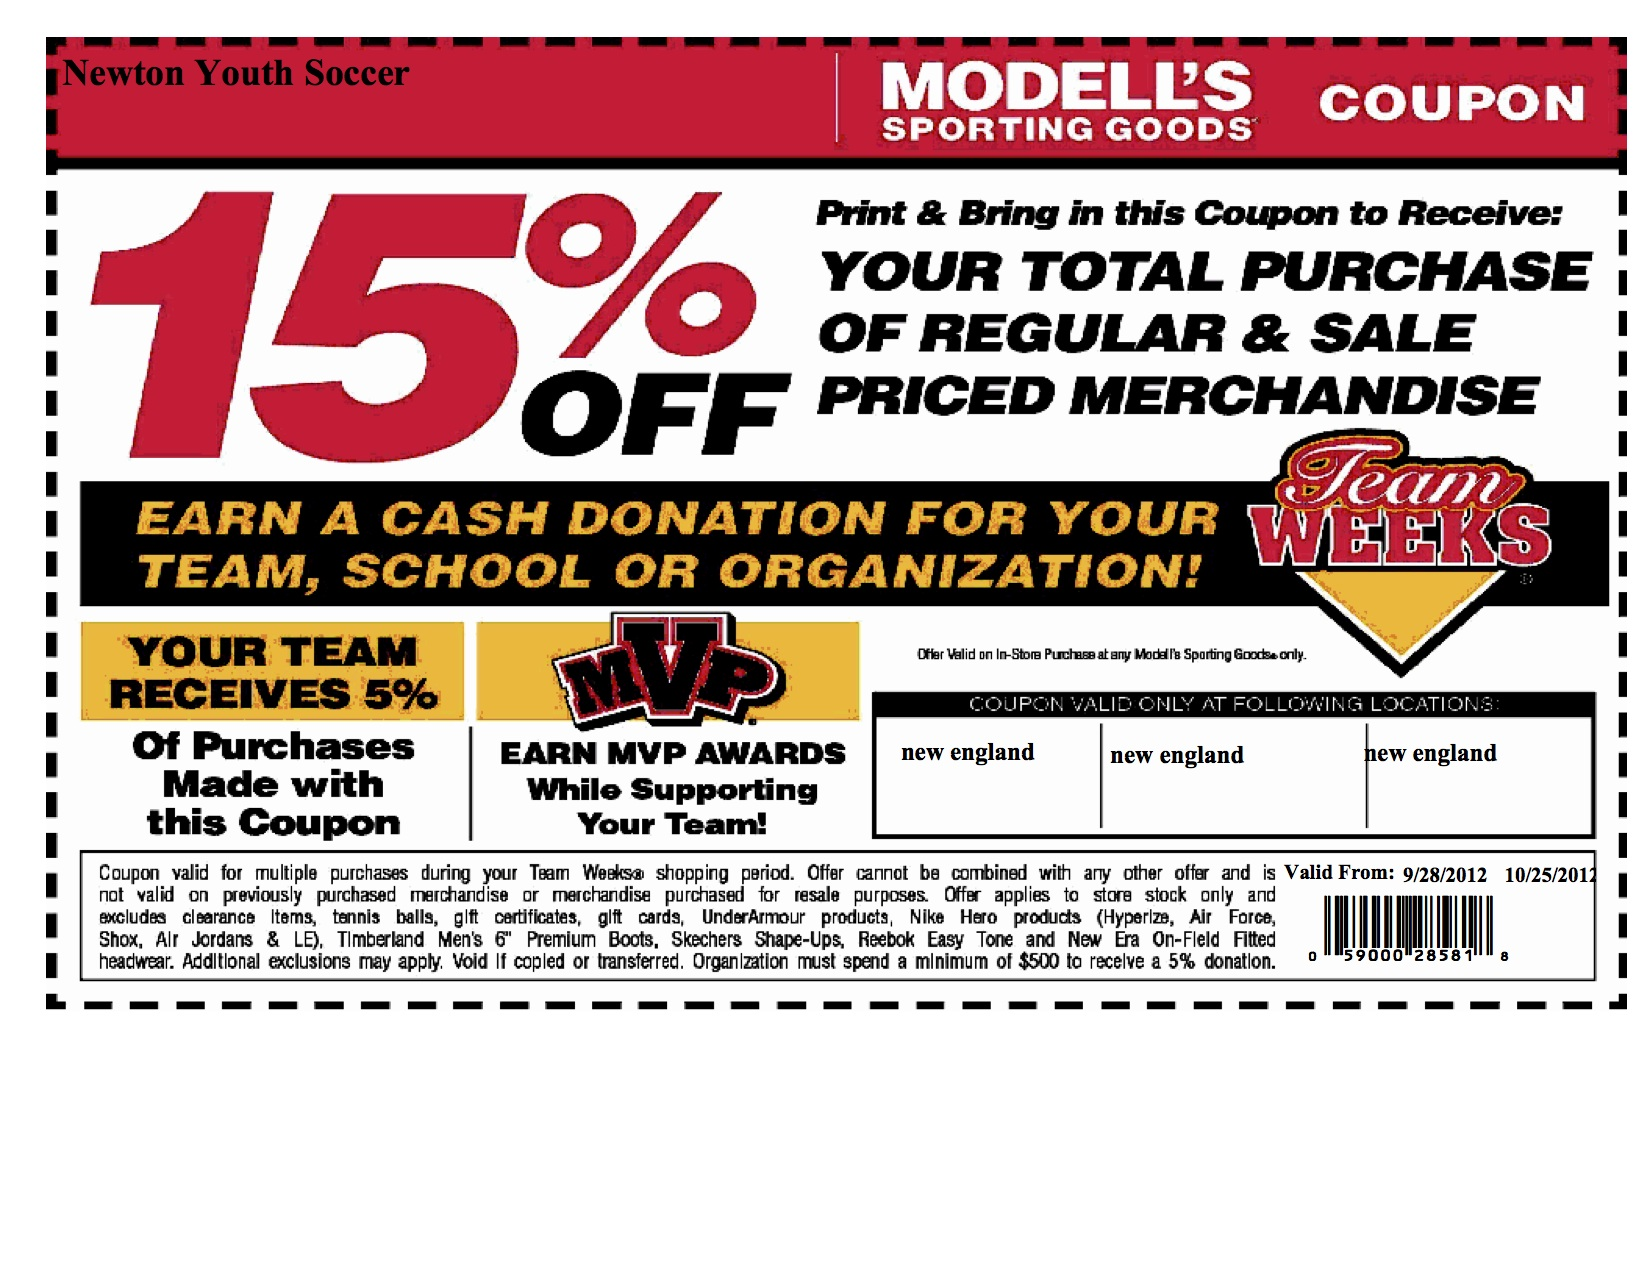 Modell's Printable Coupons 2014